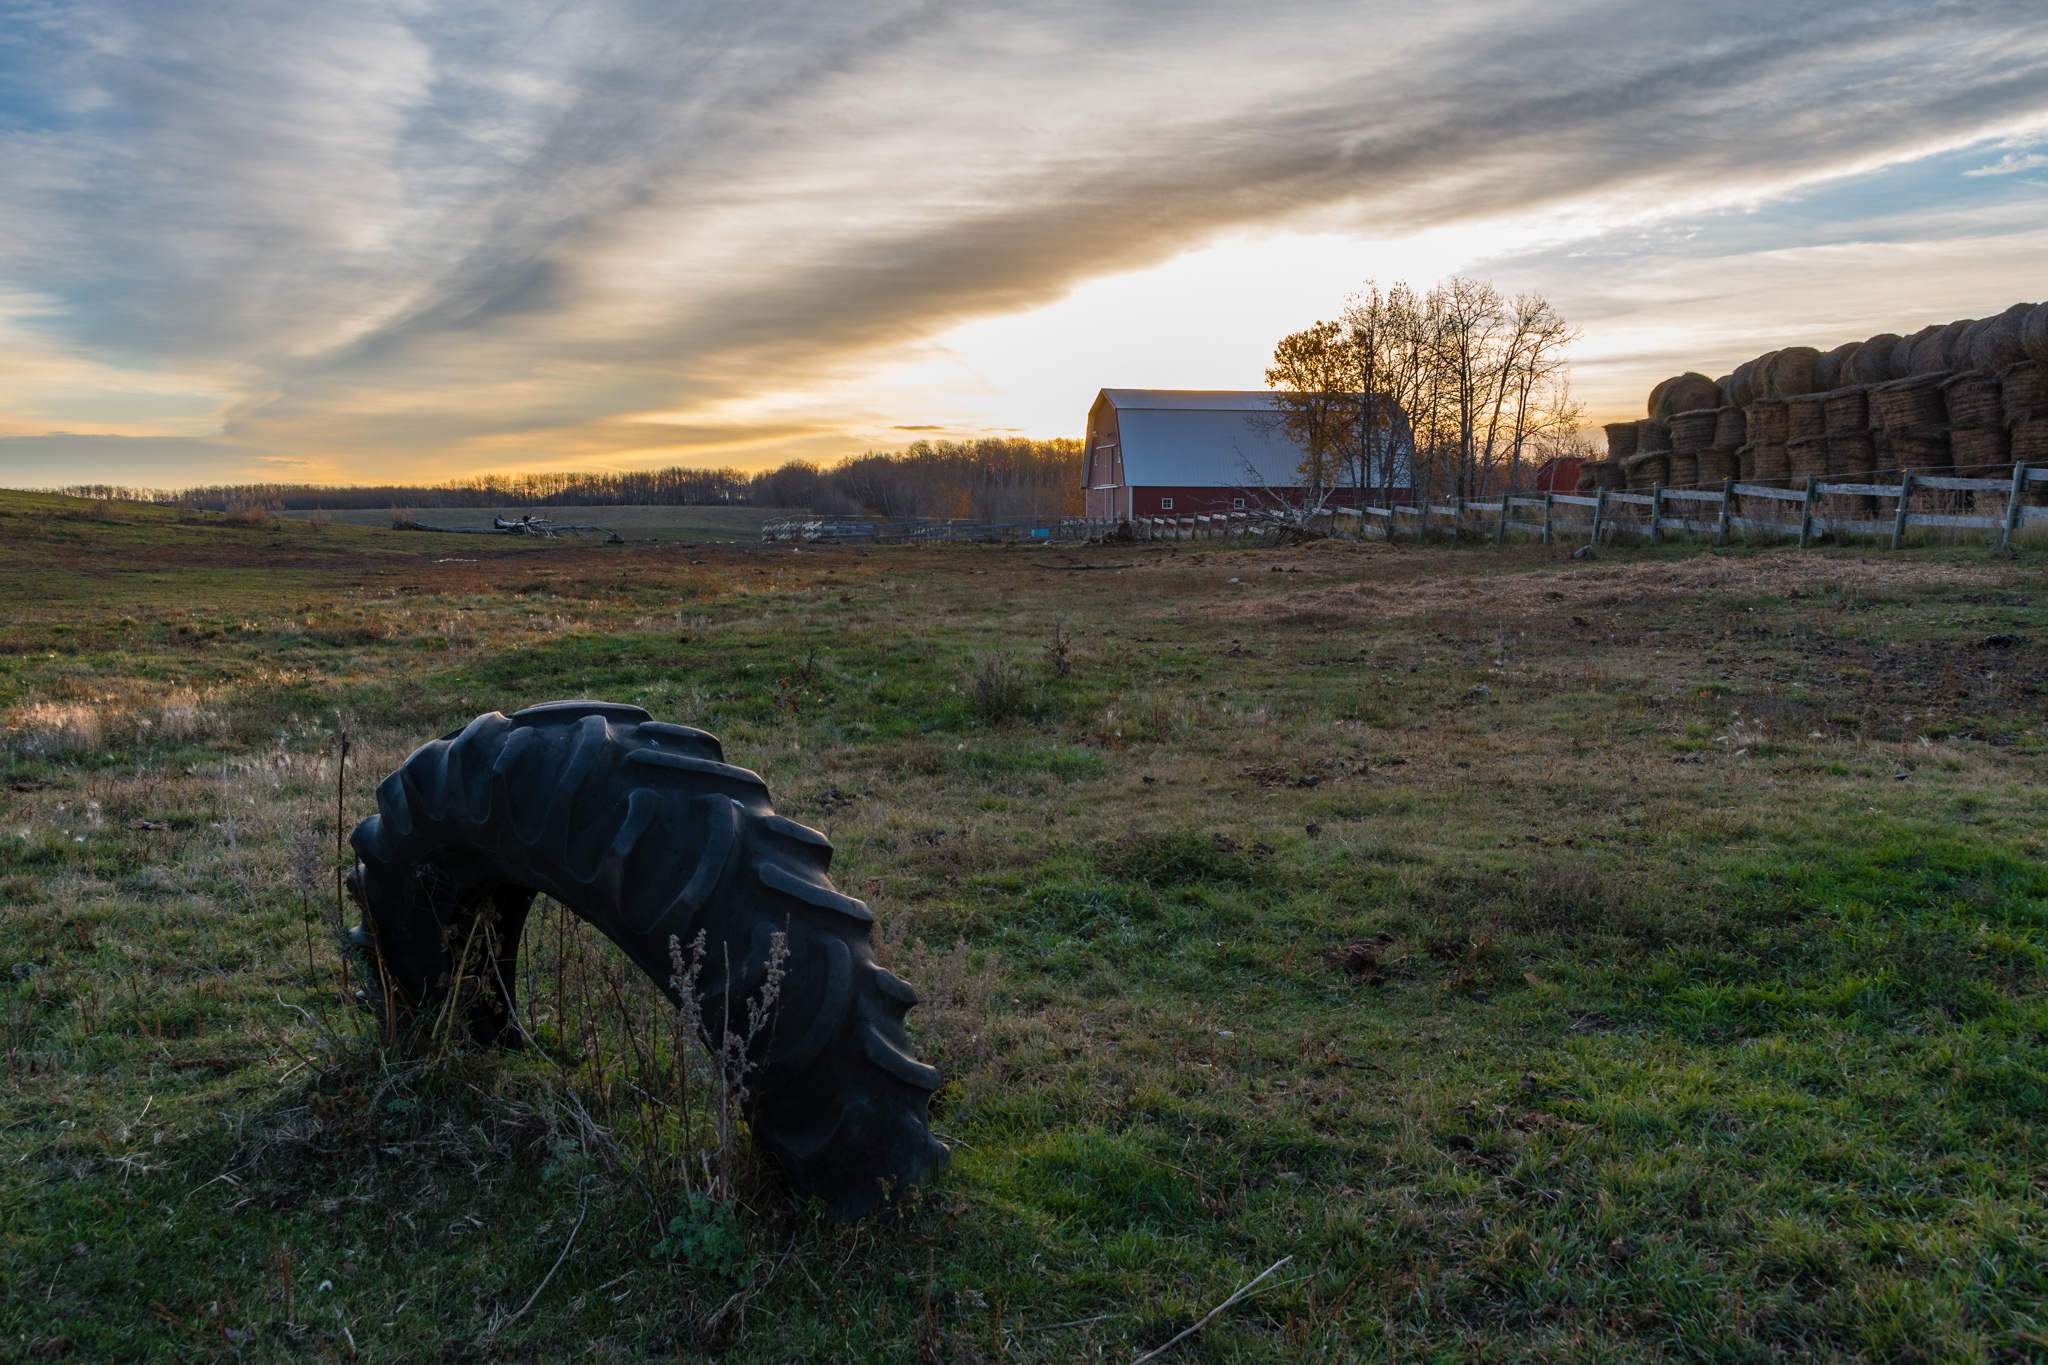 I have always been a city person, but I can appricate the farm life.